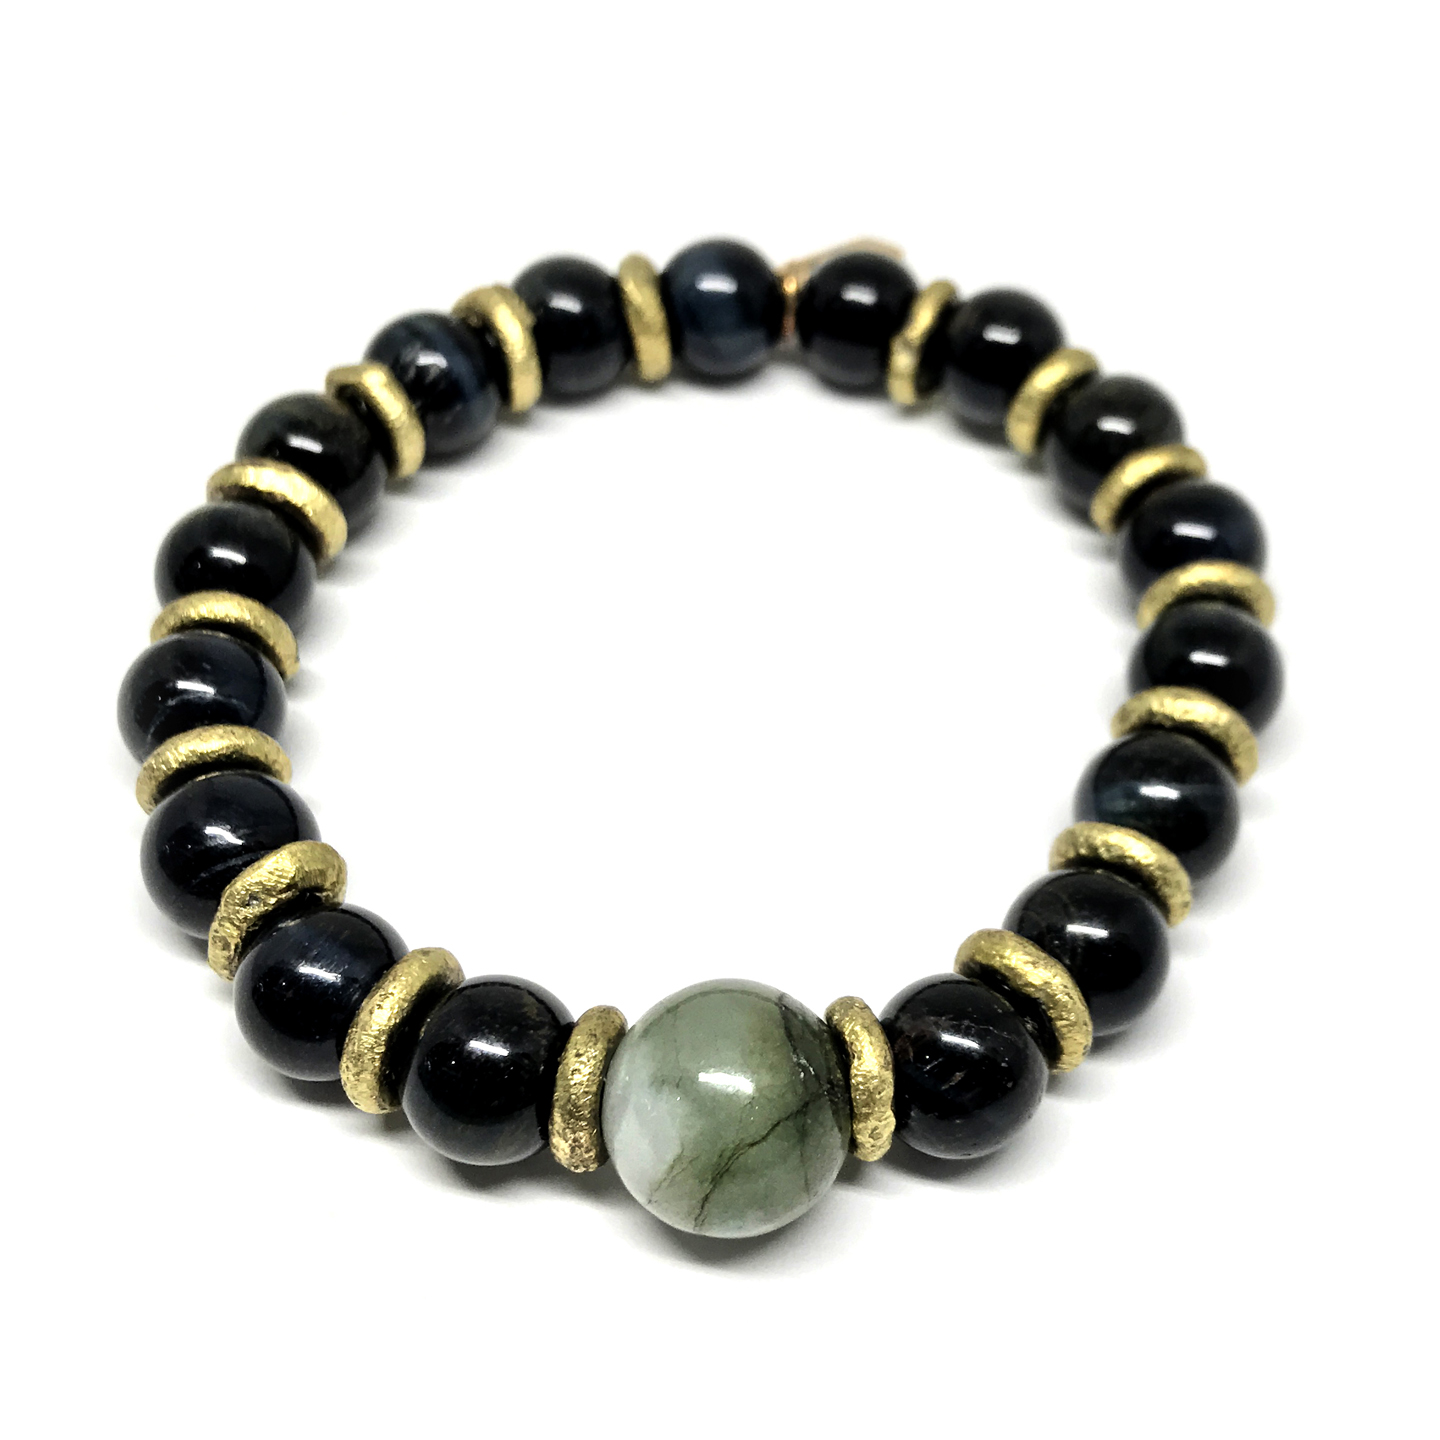 Limited Edition Tigers Eye Jade Bronze Men S Beaded Bracelet